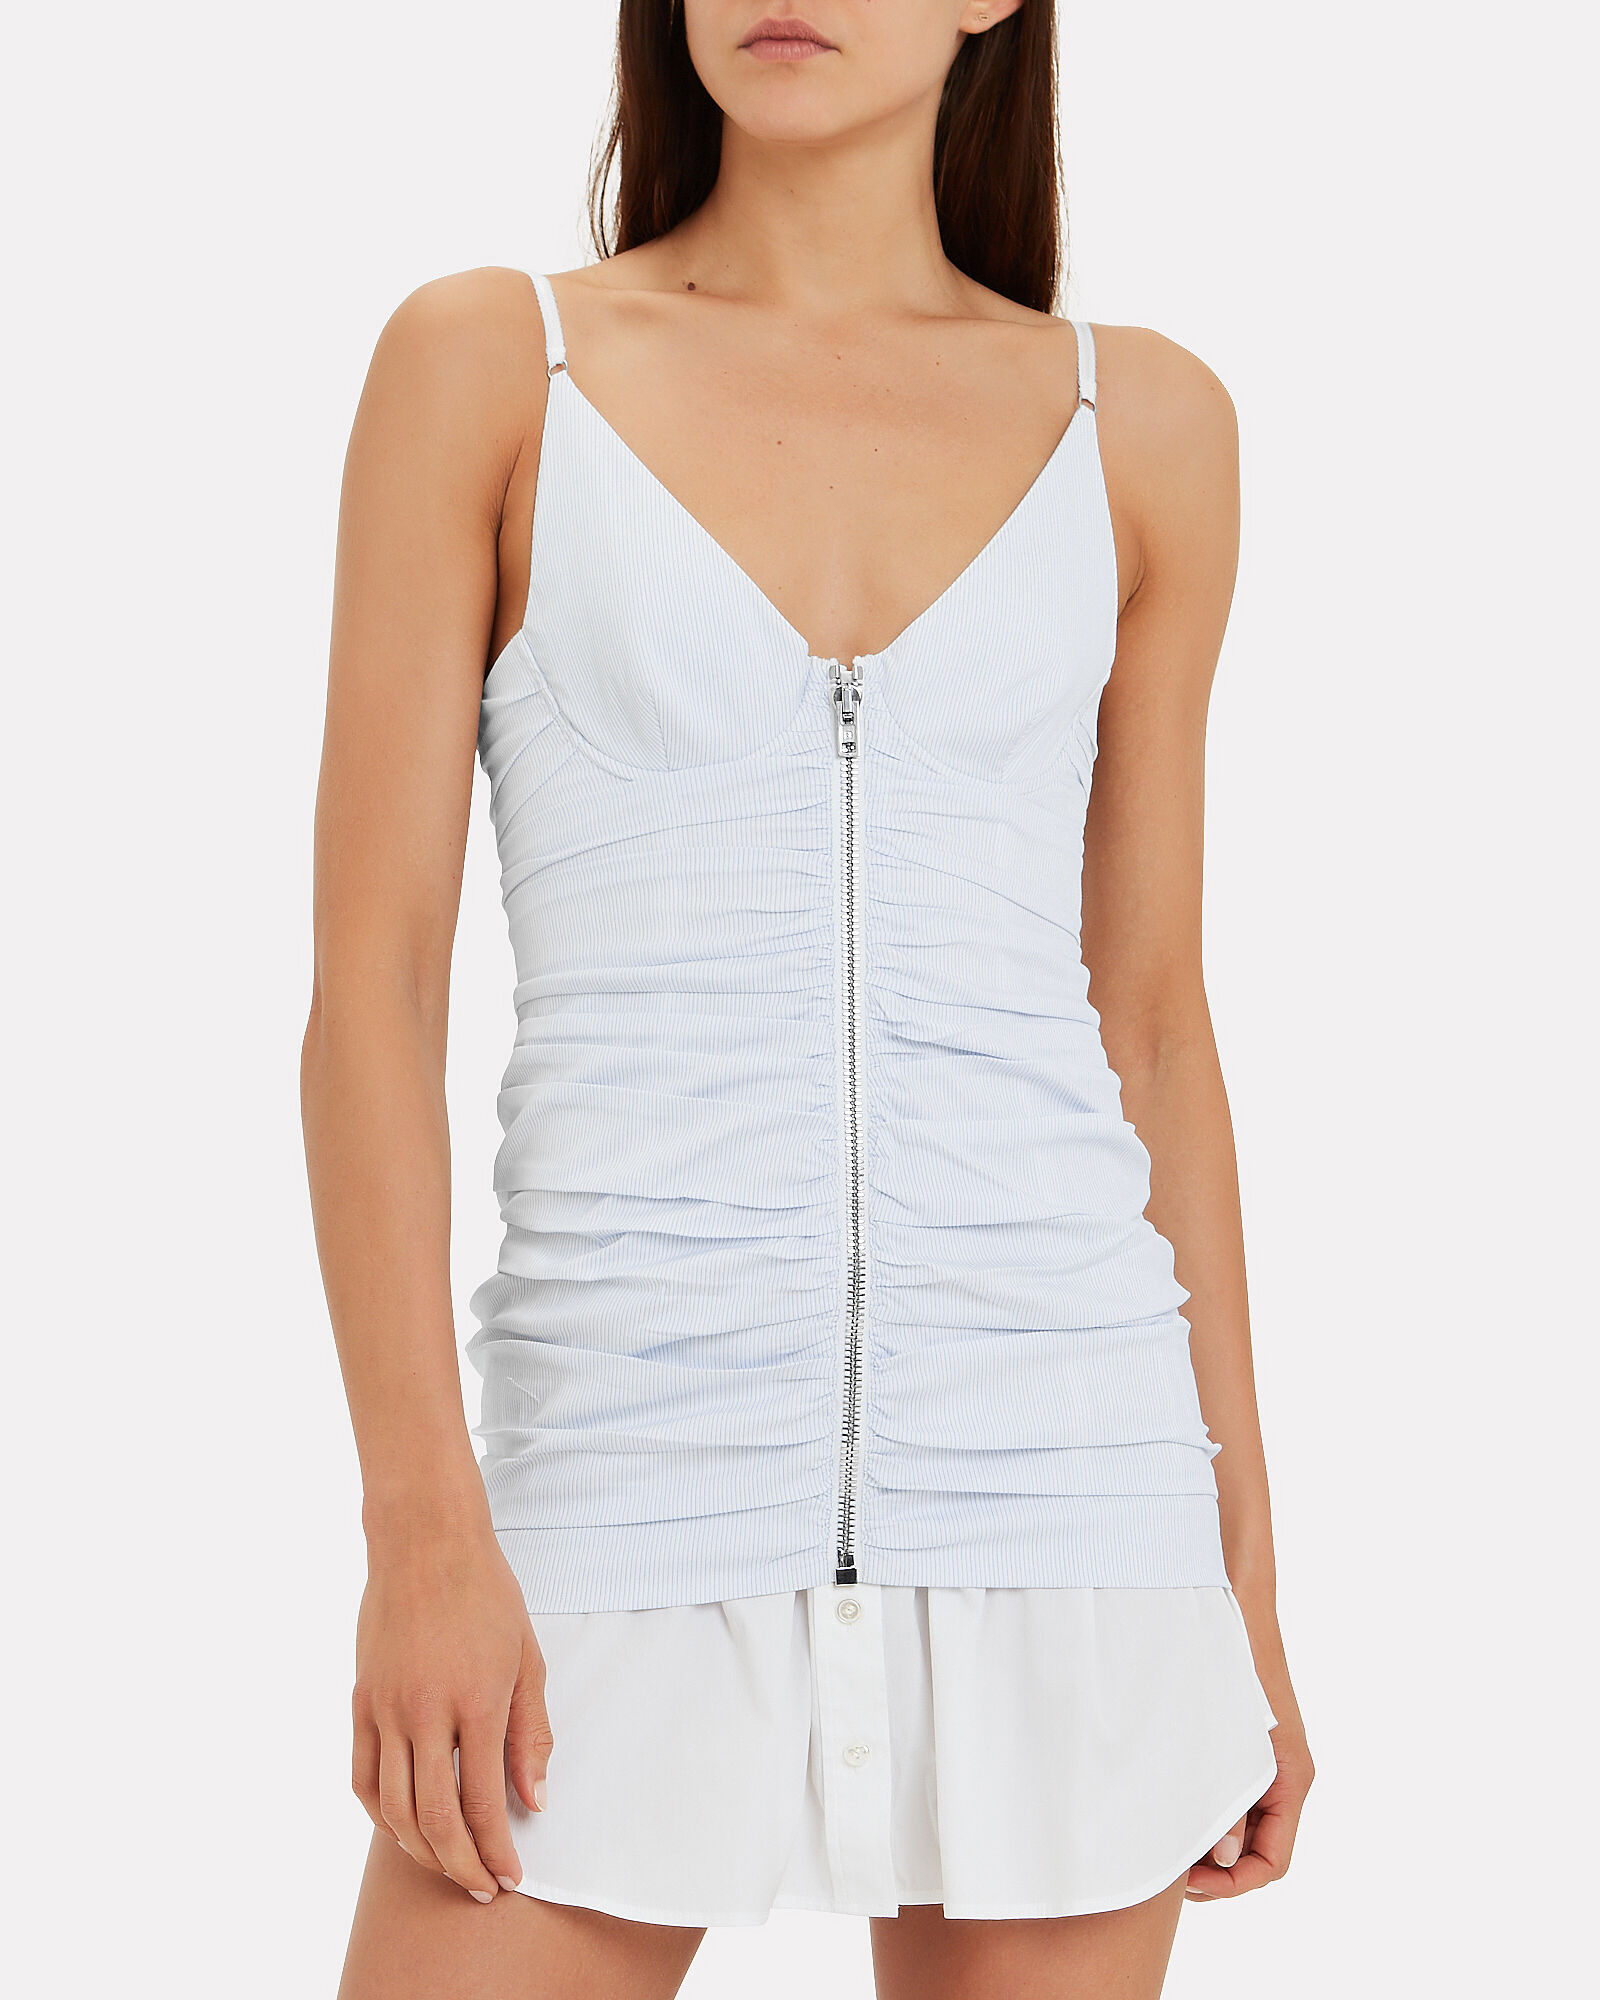 Ruched Pinstripe Camisole Dress, BLUE/WHITE, hi-res